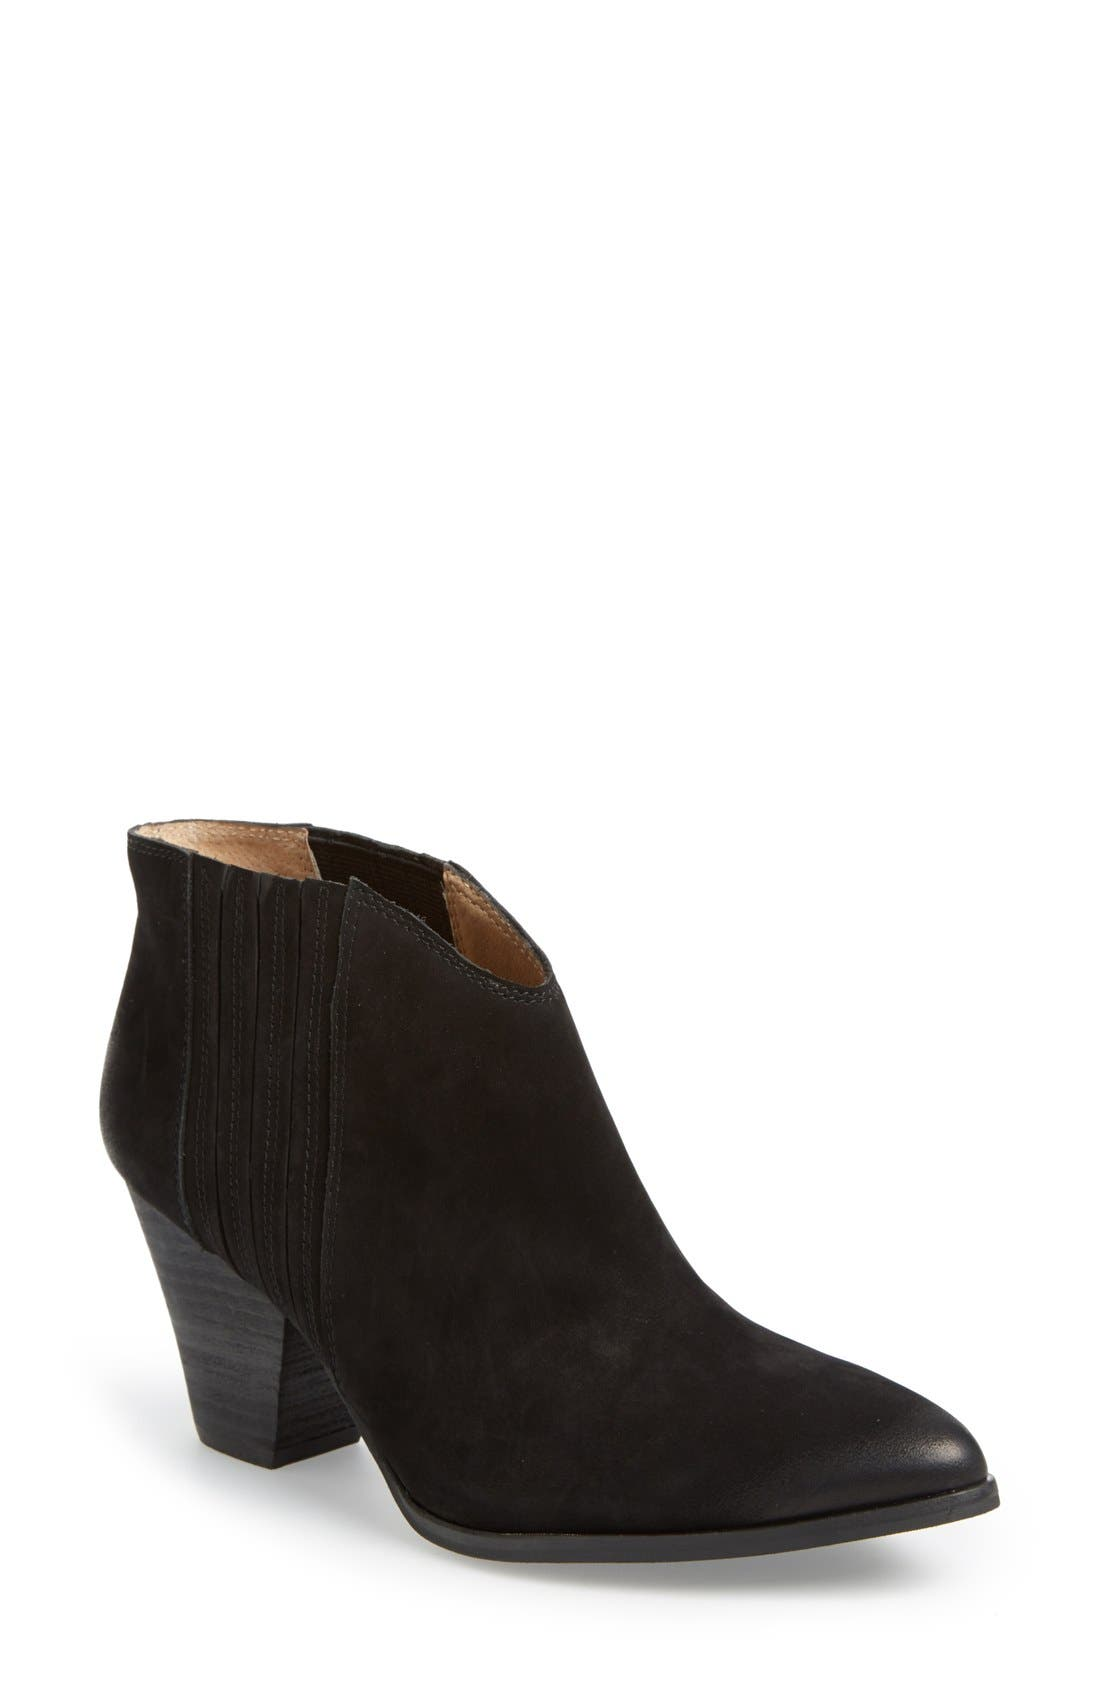 'Addie' Pointy Toe Ankle Bootie,                             Main thumbnail 1, color,